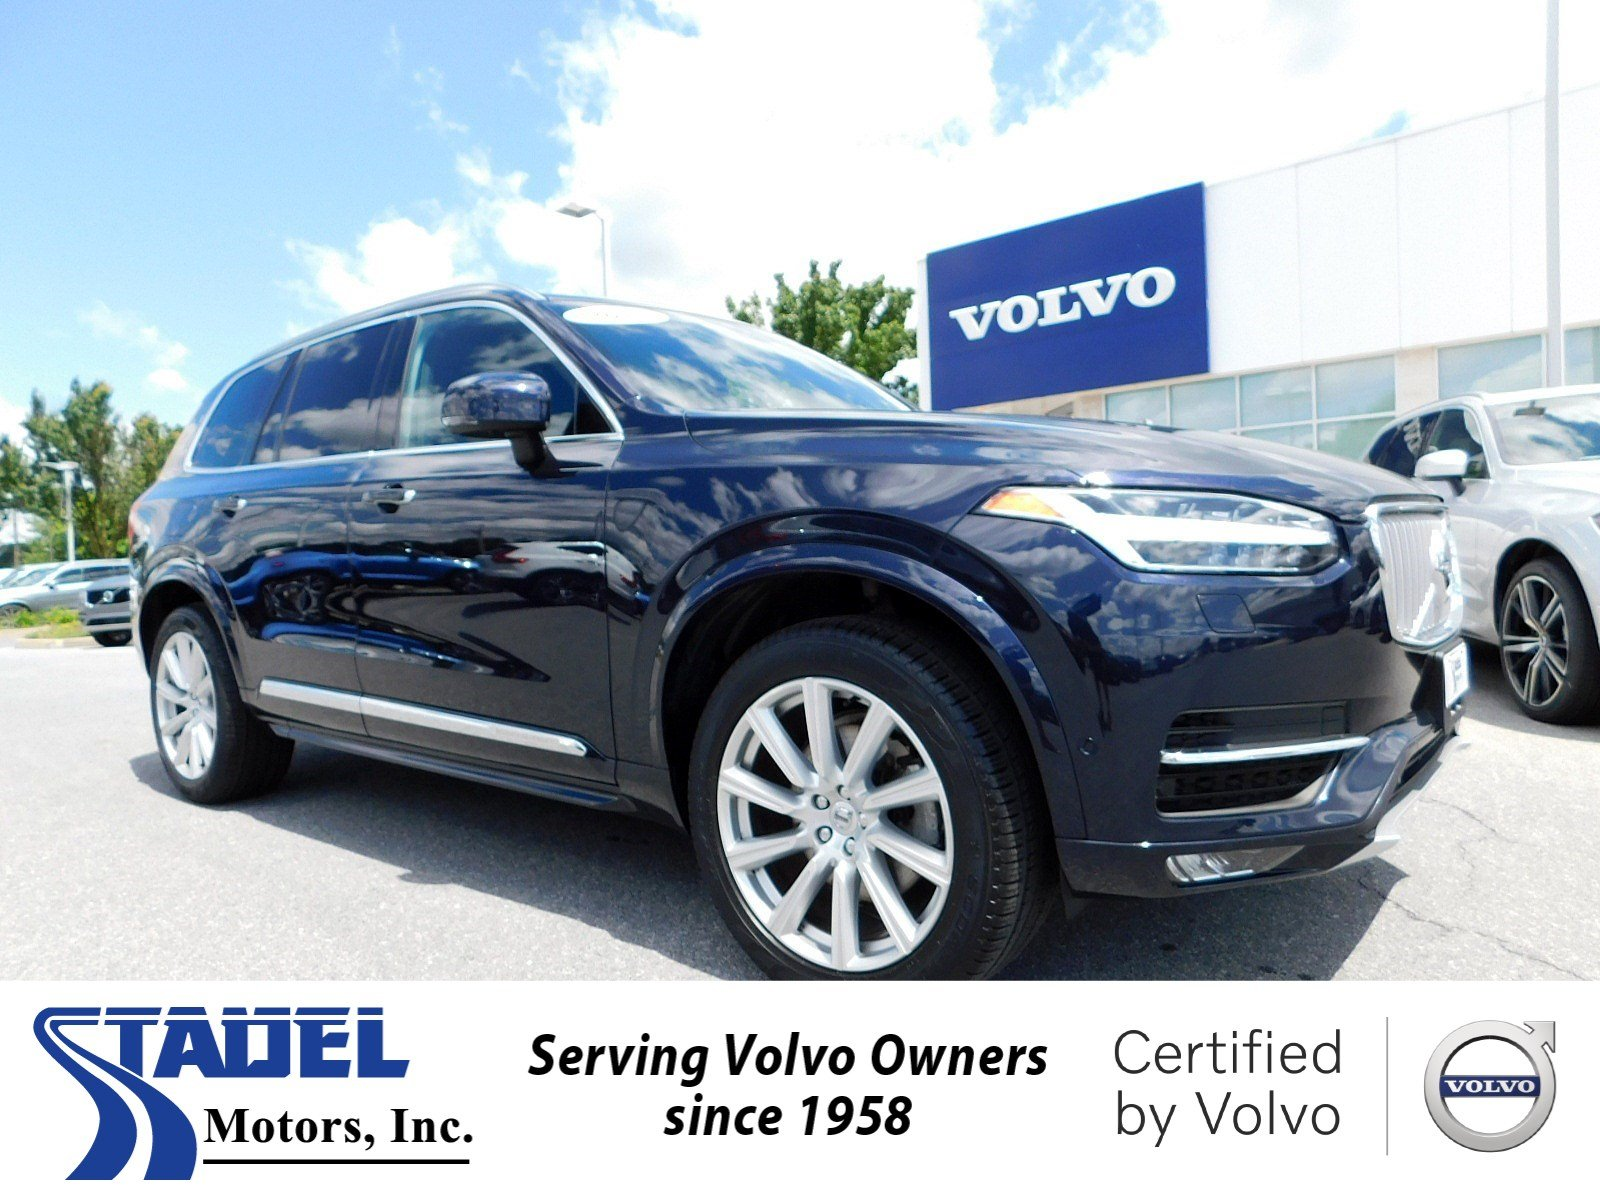 Certified 2017 Volvo Xc90 Inscription For Sale In East Petersburg Pa Vin Yv4a22pl8h1164822